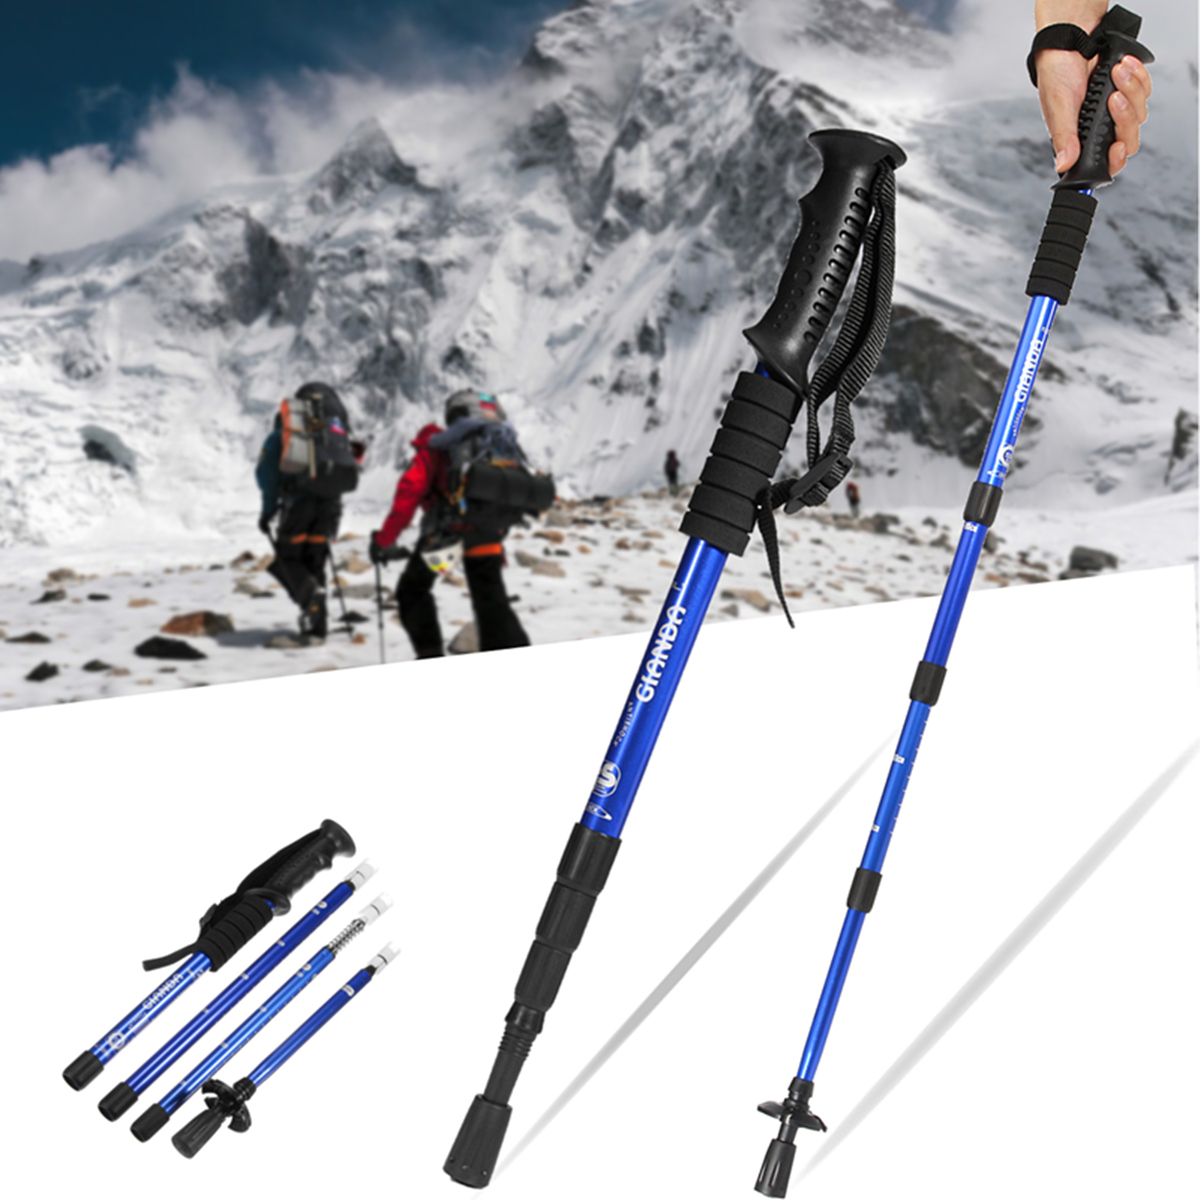 IPRee® 4 Section Hiking Walking Climbing Sticks Trekking Pole Adjustable Anti Shock Aluminum Canes 50-110cm